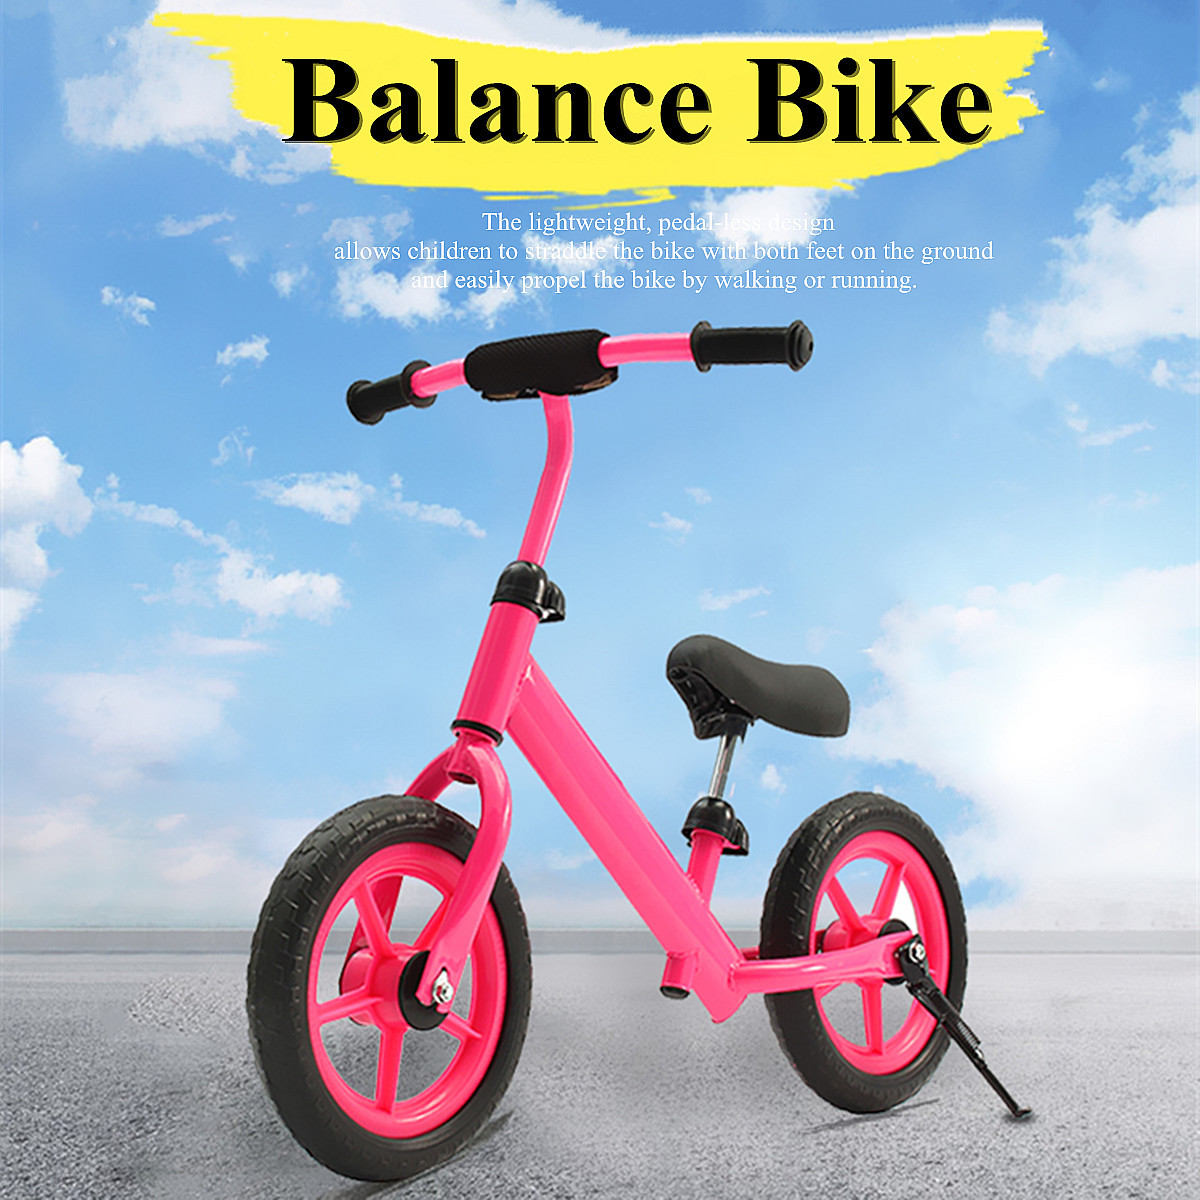 12'' Balance Bike Classic Kids No-Pedal Learn To Ride Pre Bike w/ Adjustable Seat